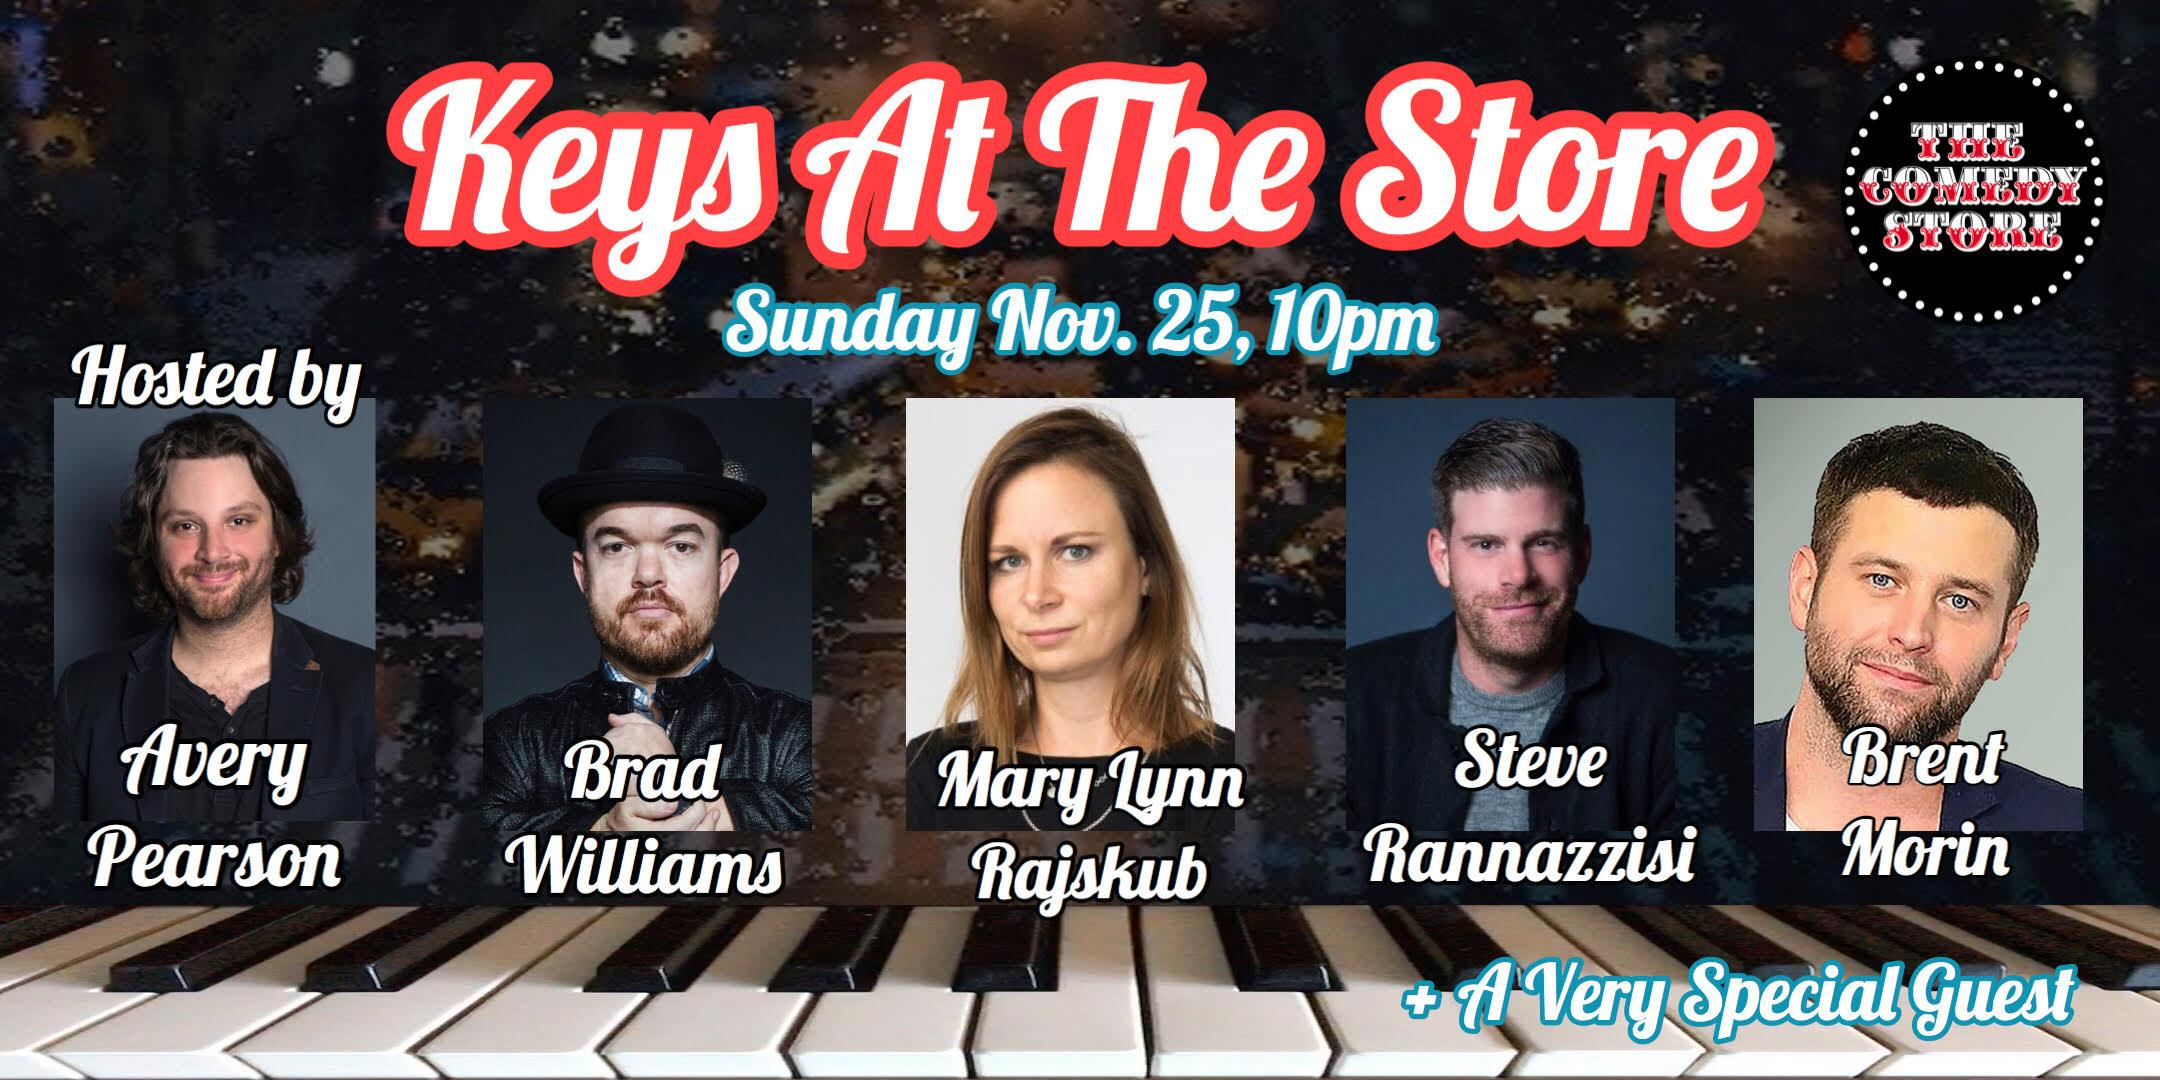 Keys At The Store with Avery Pearson, Steve Rannazzisi, Brent Morin, +more!